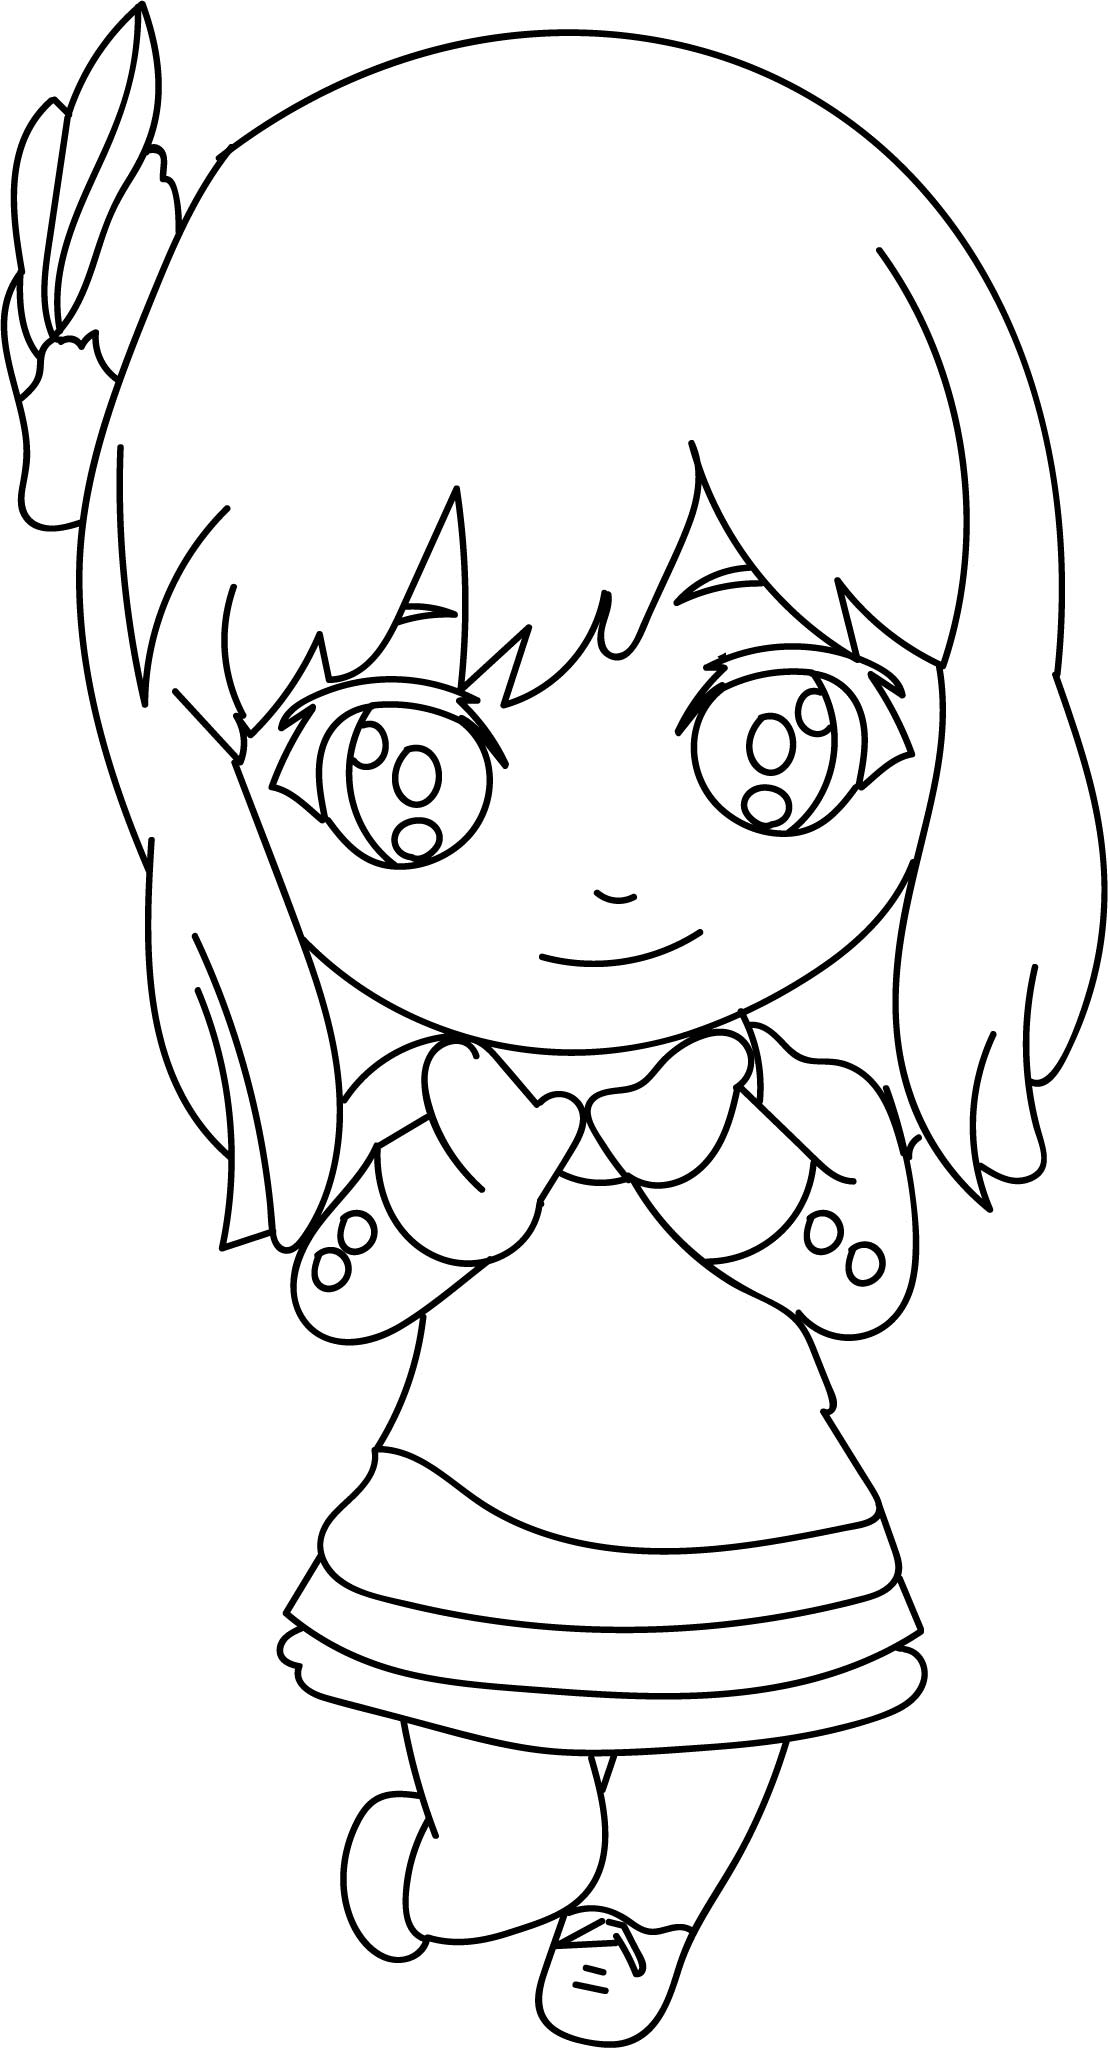 Repunzel Coloring Pages Cute Chibi Girl